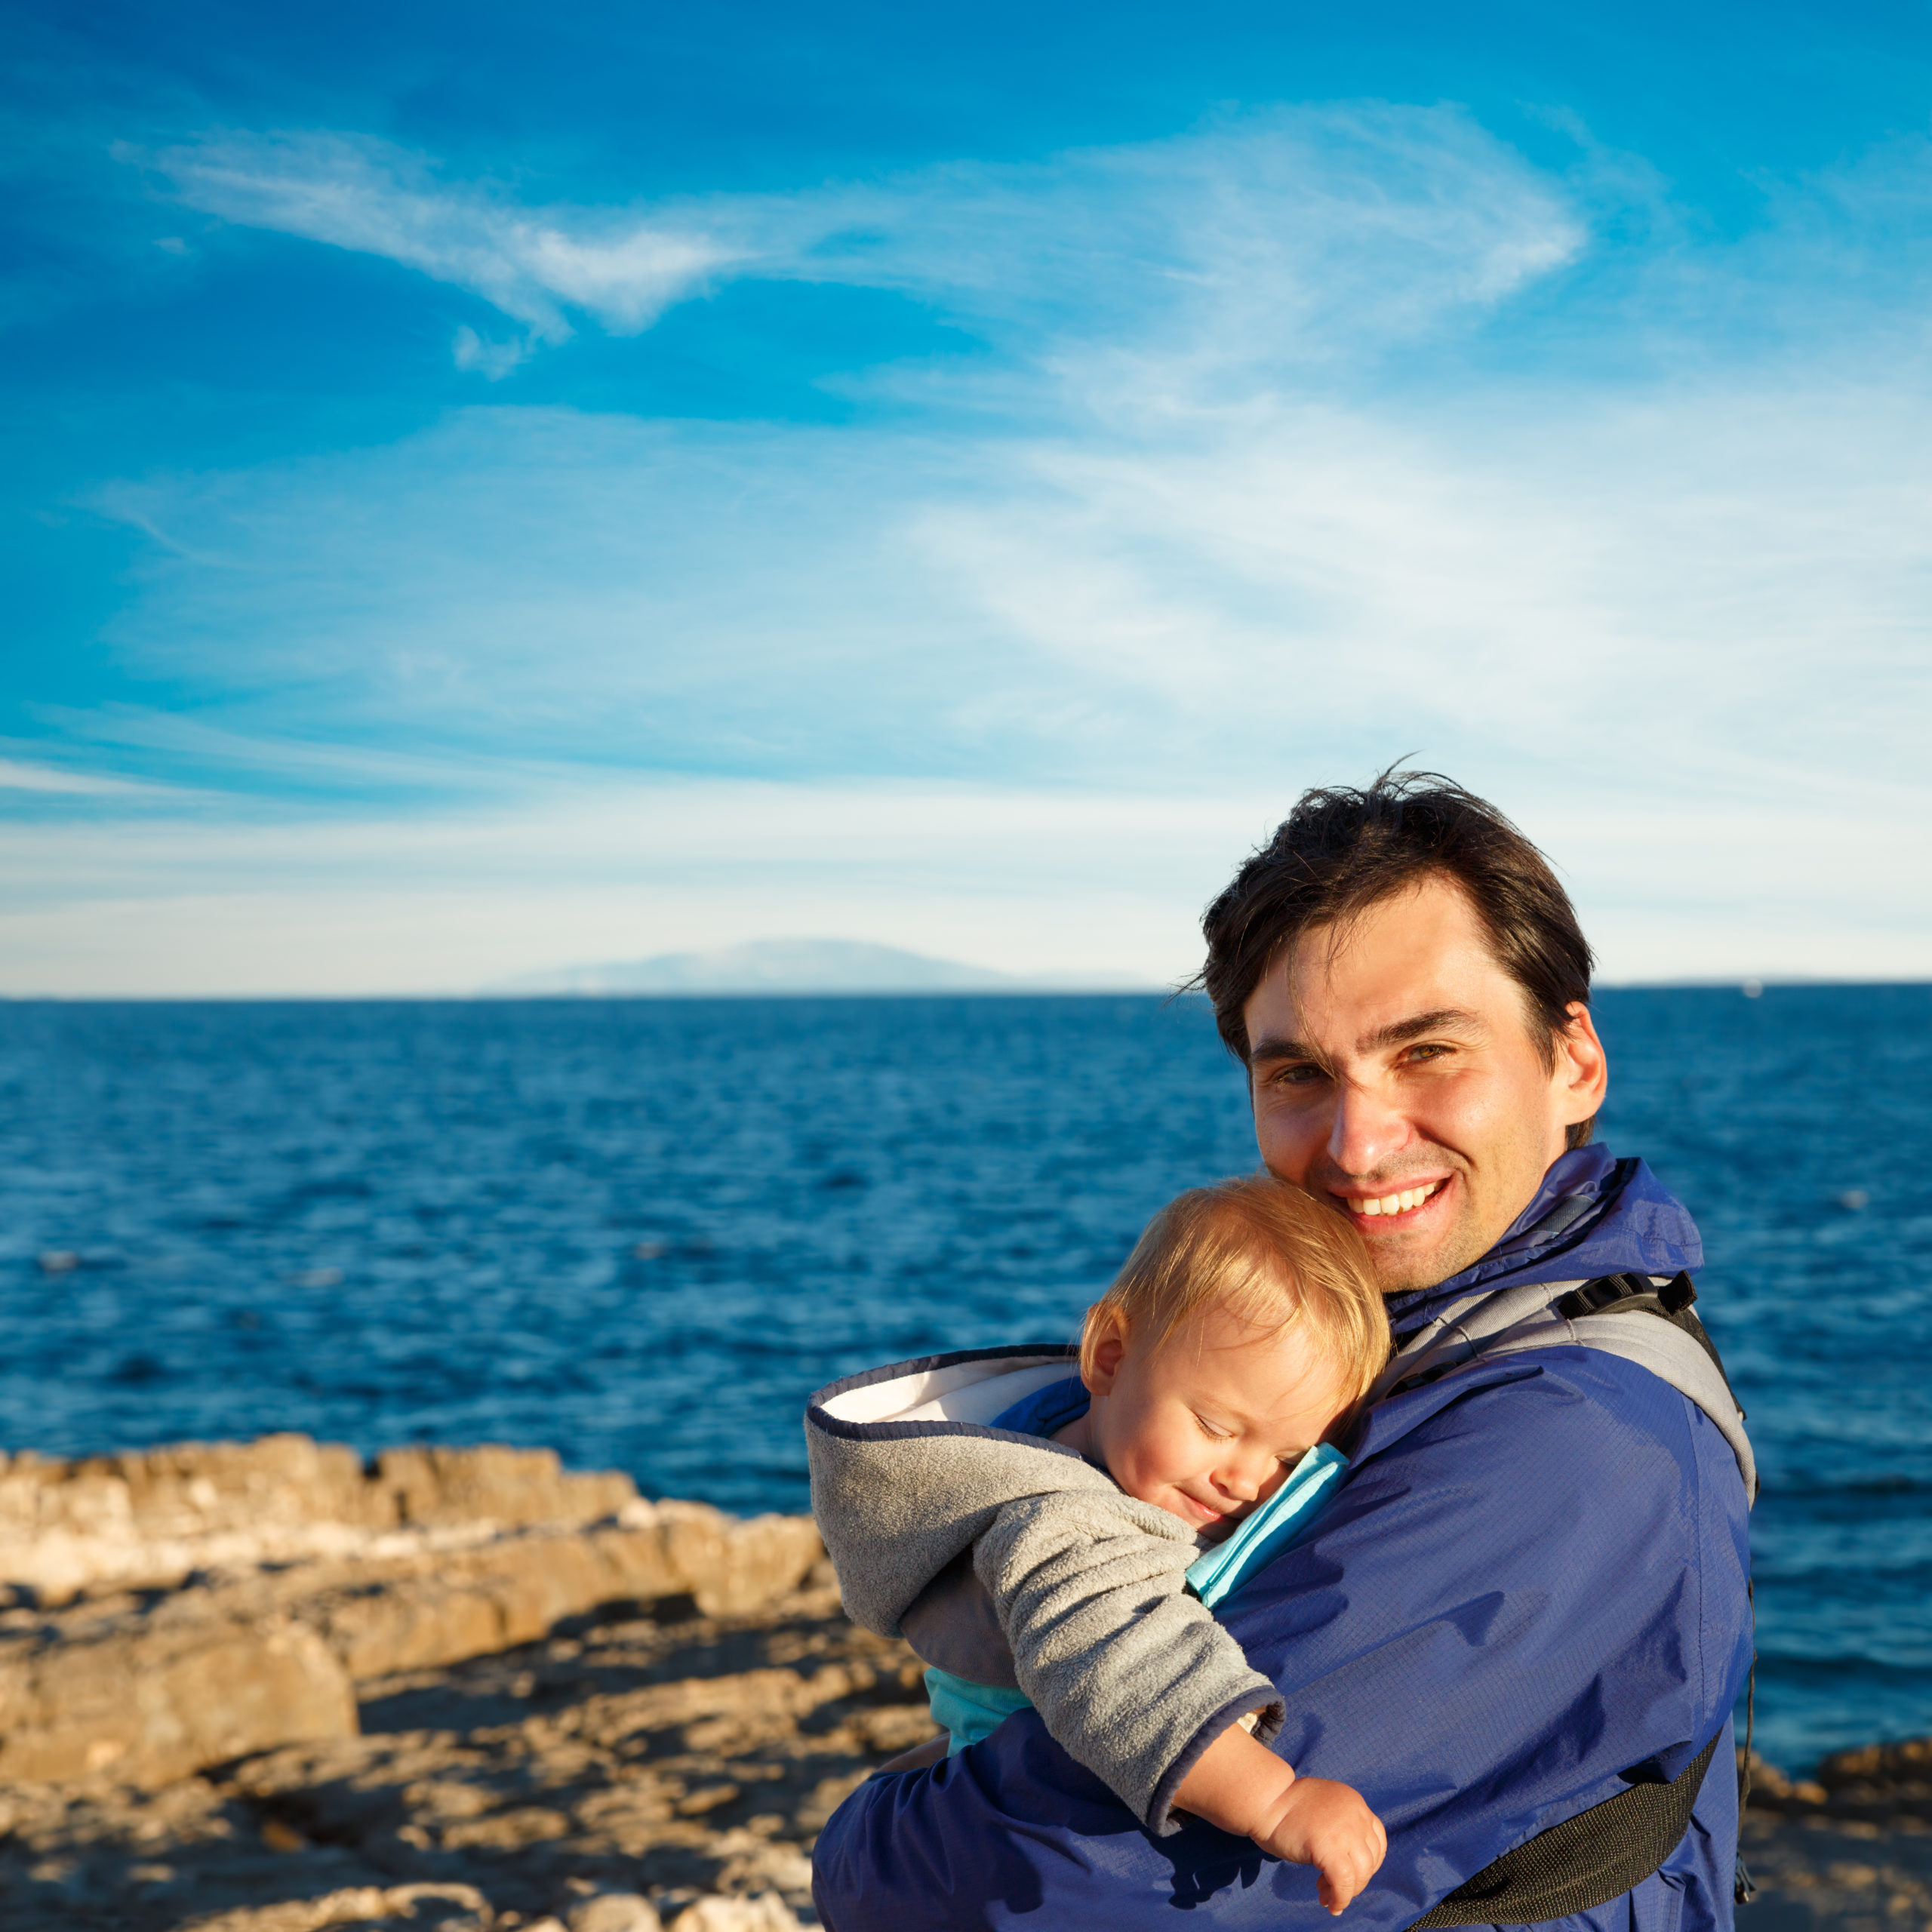 Happy,Father,With,His,Little,Son,In,Carrier,On,Sea